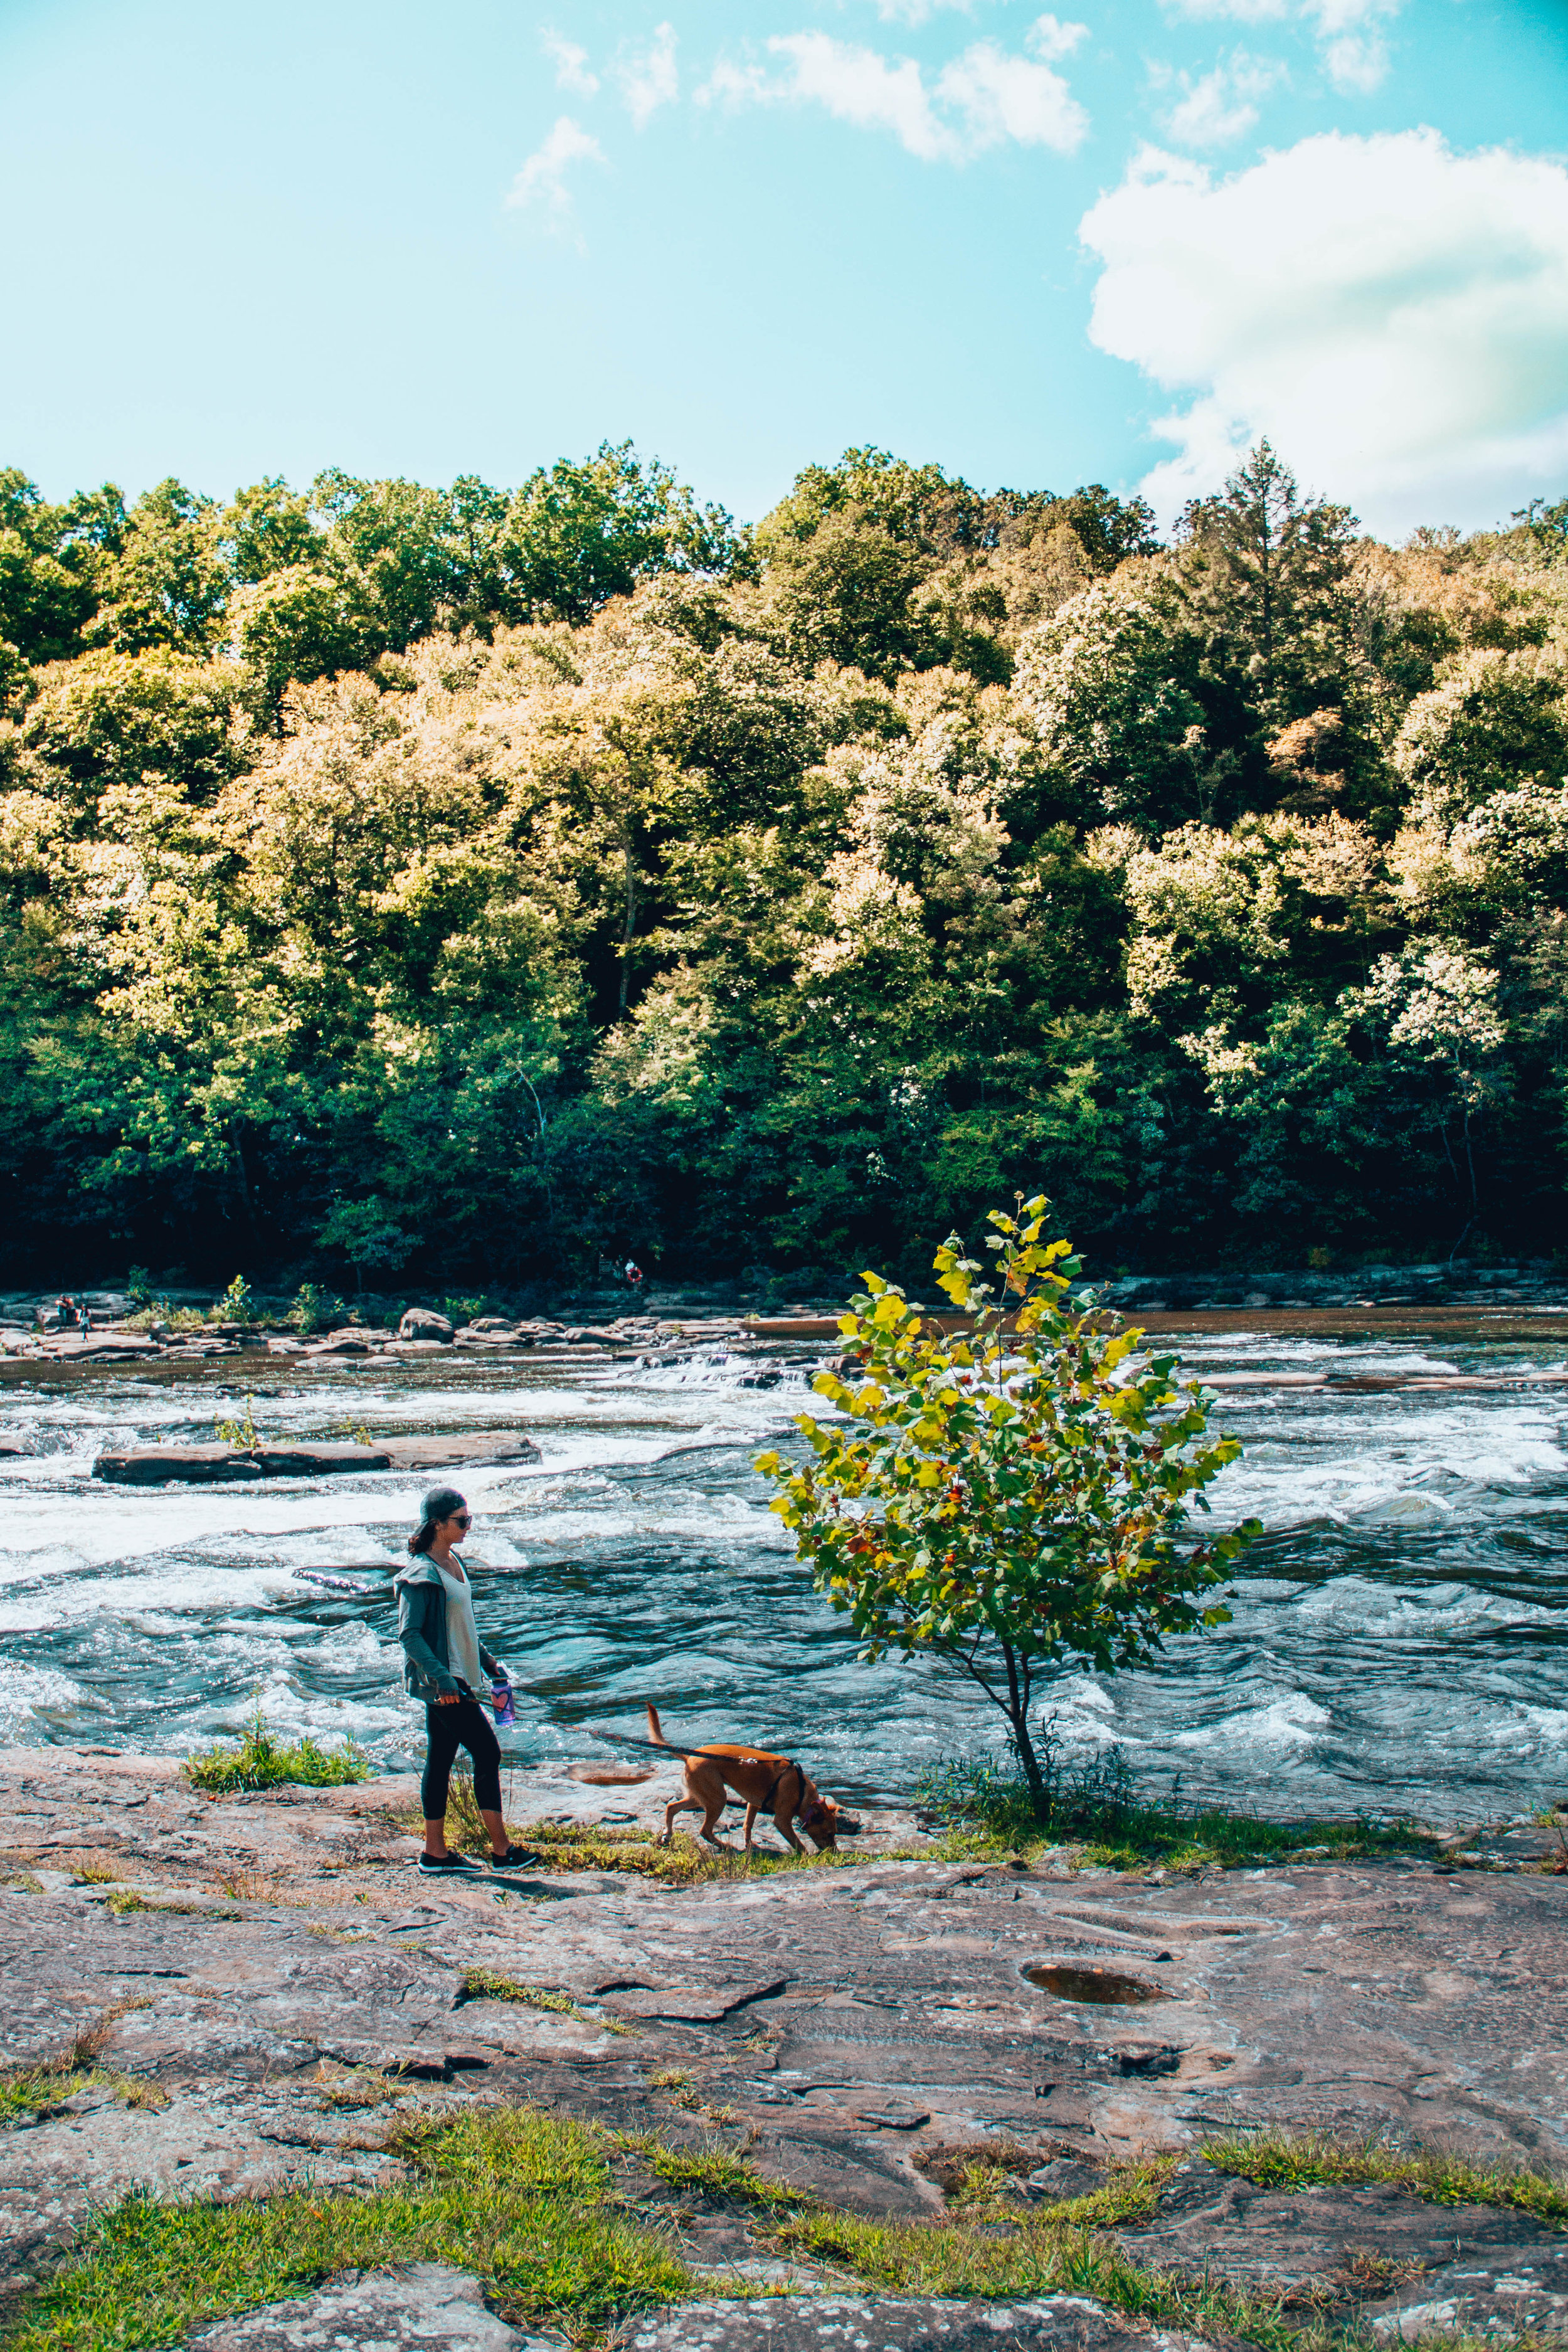 Walking Olyvia by the Youghiogheny River